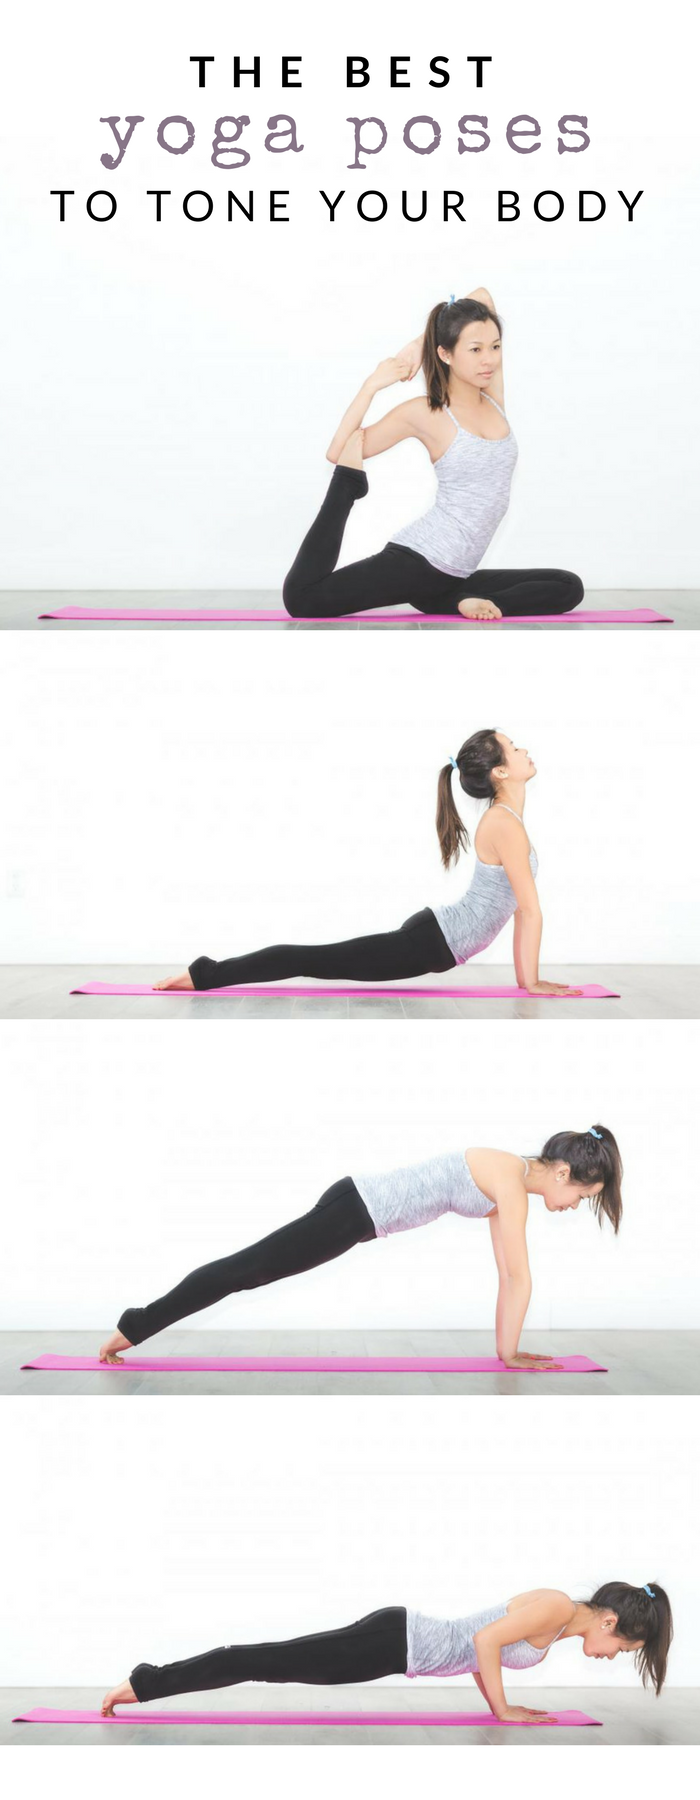 The Best Yoga Poses to Tone Your Body - Parsnips and Pastries